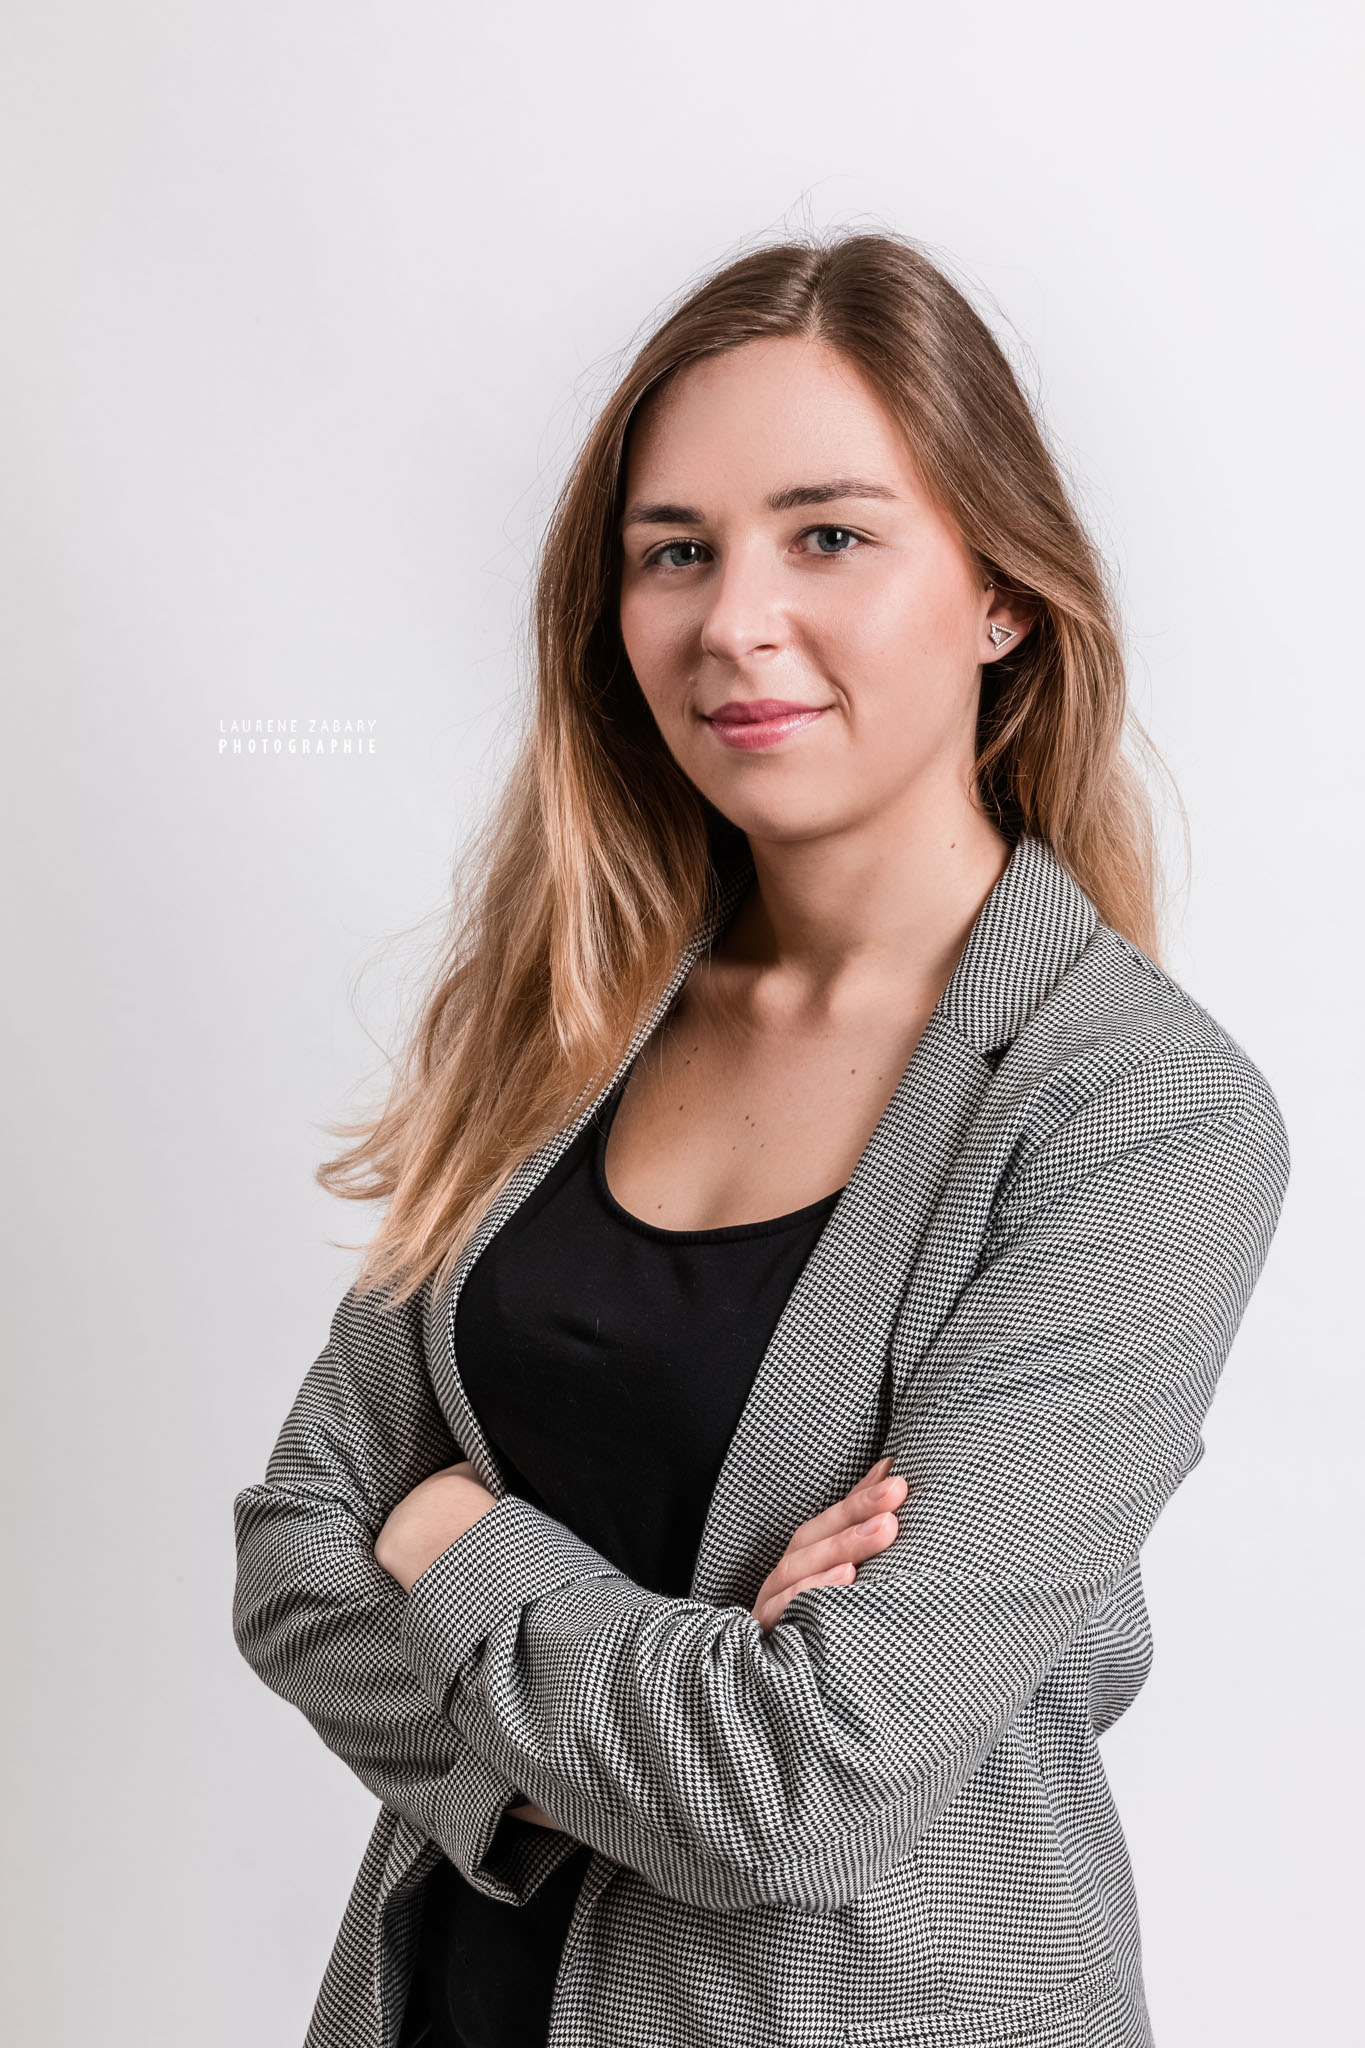 Portraits corporate en studio (trombinoscope) des étudiants de la promotion du Master 2 Droit immobilier et de la construction de l'université Panthéon Assas Paris 2, réalisée par la photographe professionnelle Laurène Zabary